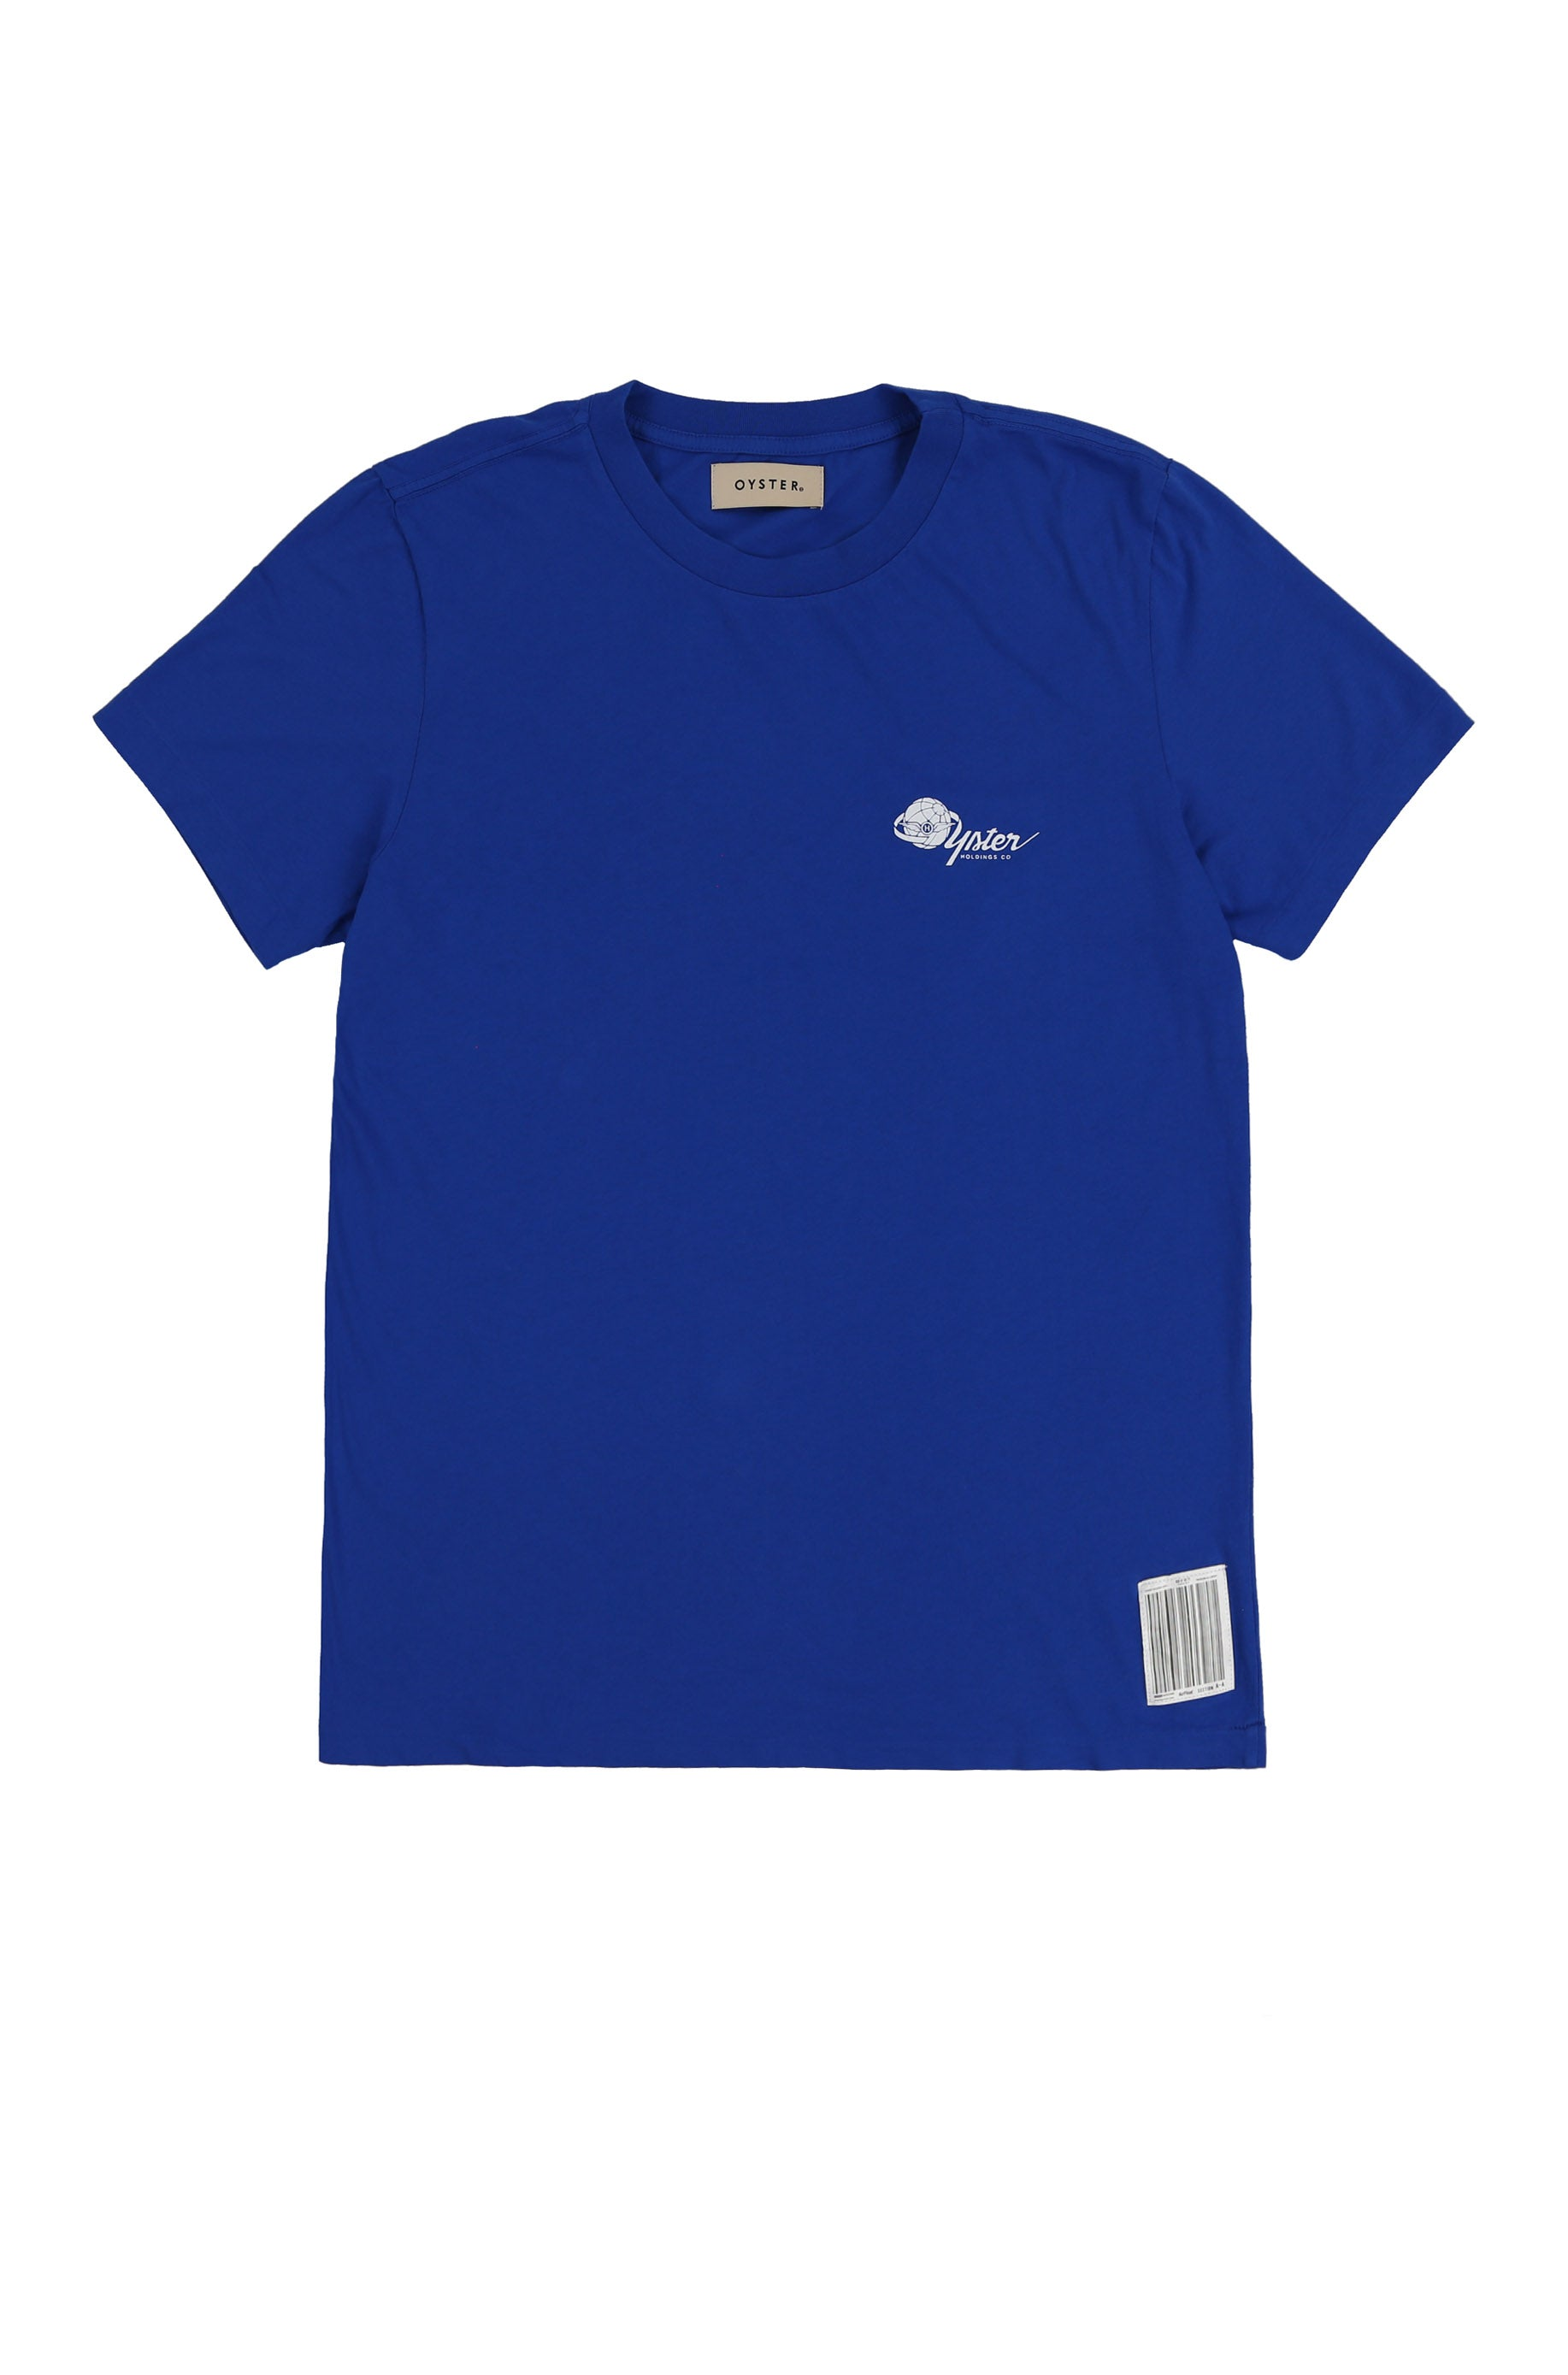 OYSTER AIRLINES CDG TEE (ROYAL BLUE)